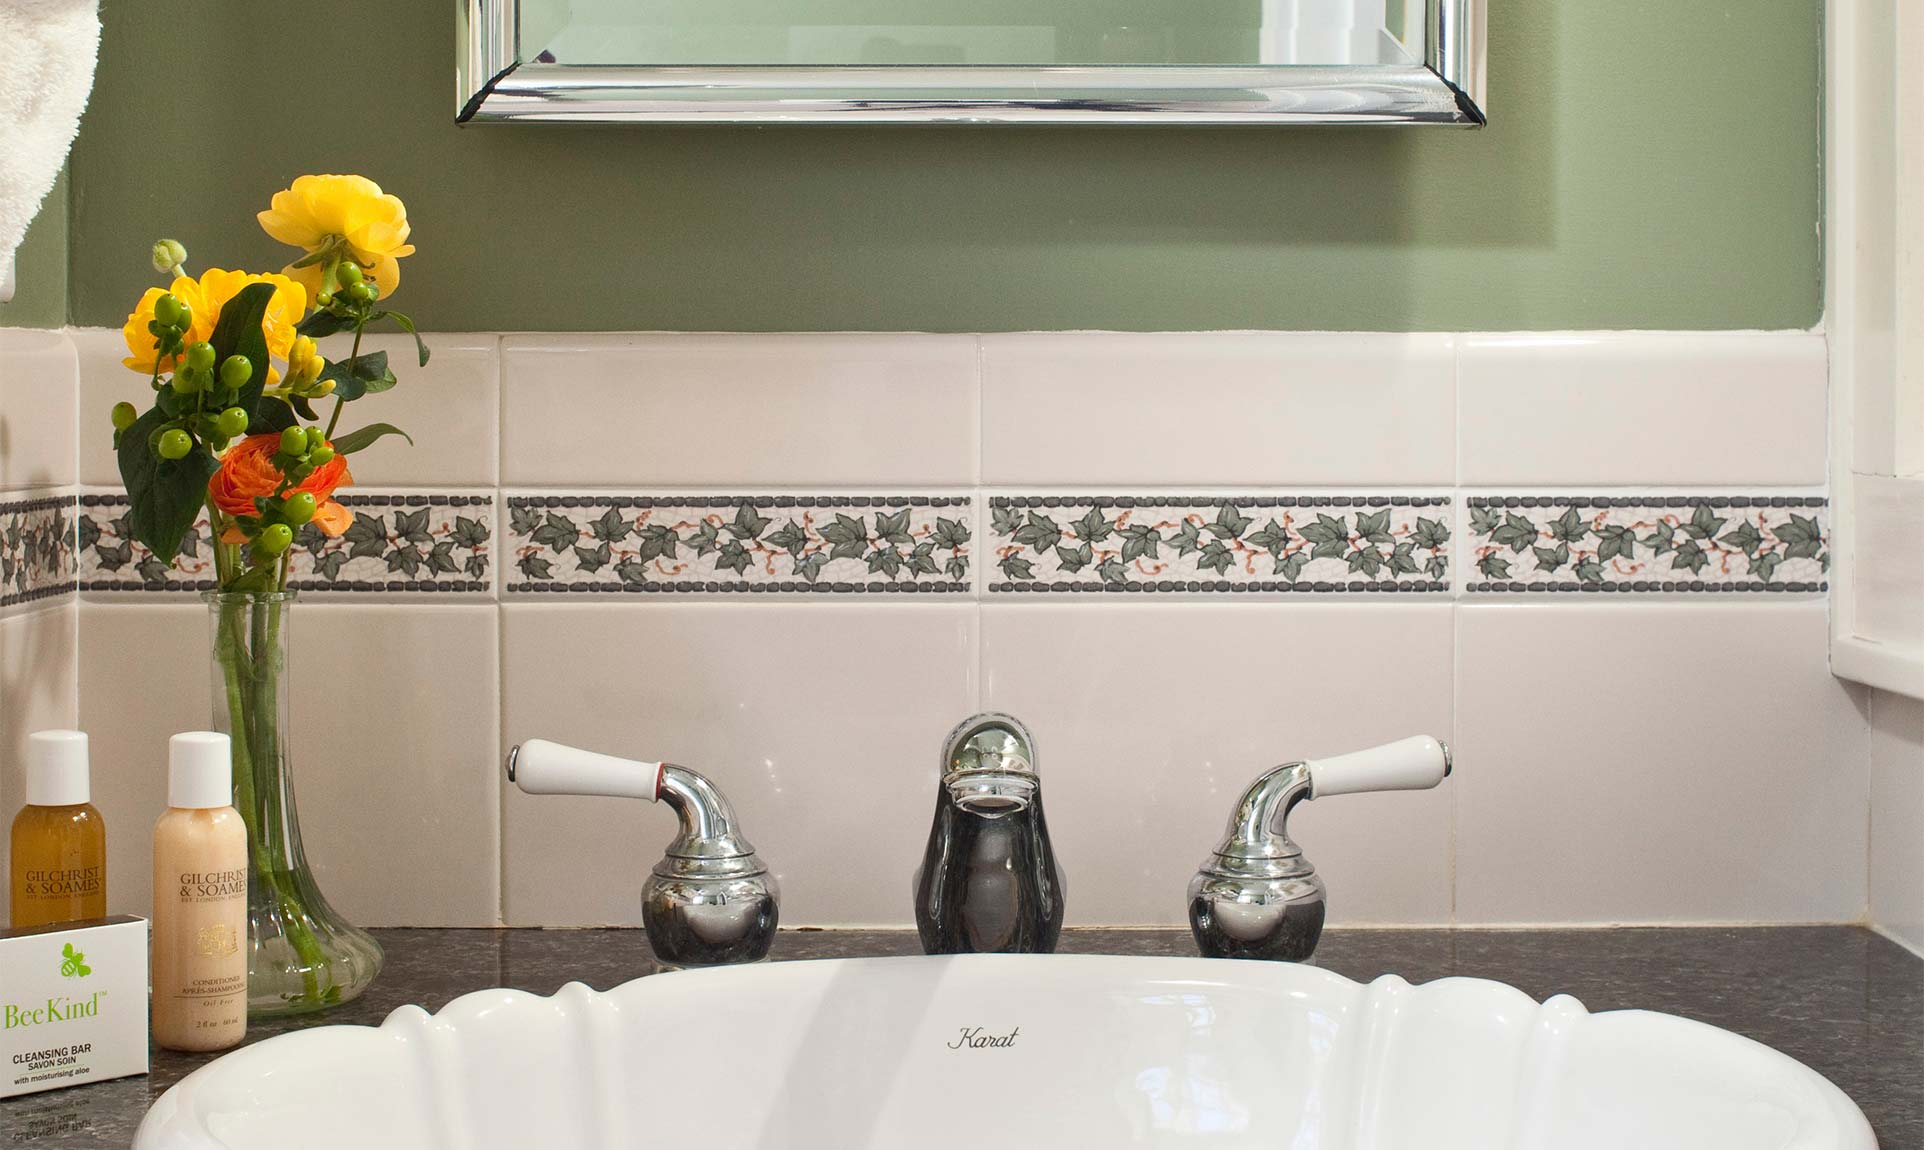 Bathroom sink with flowers in a vase and toiletries